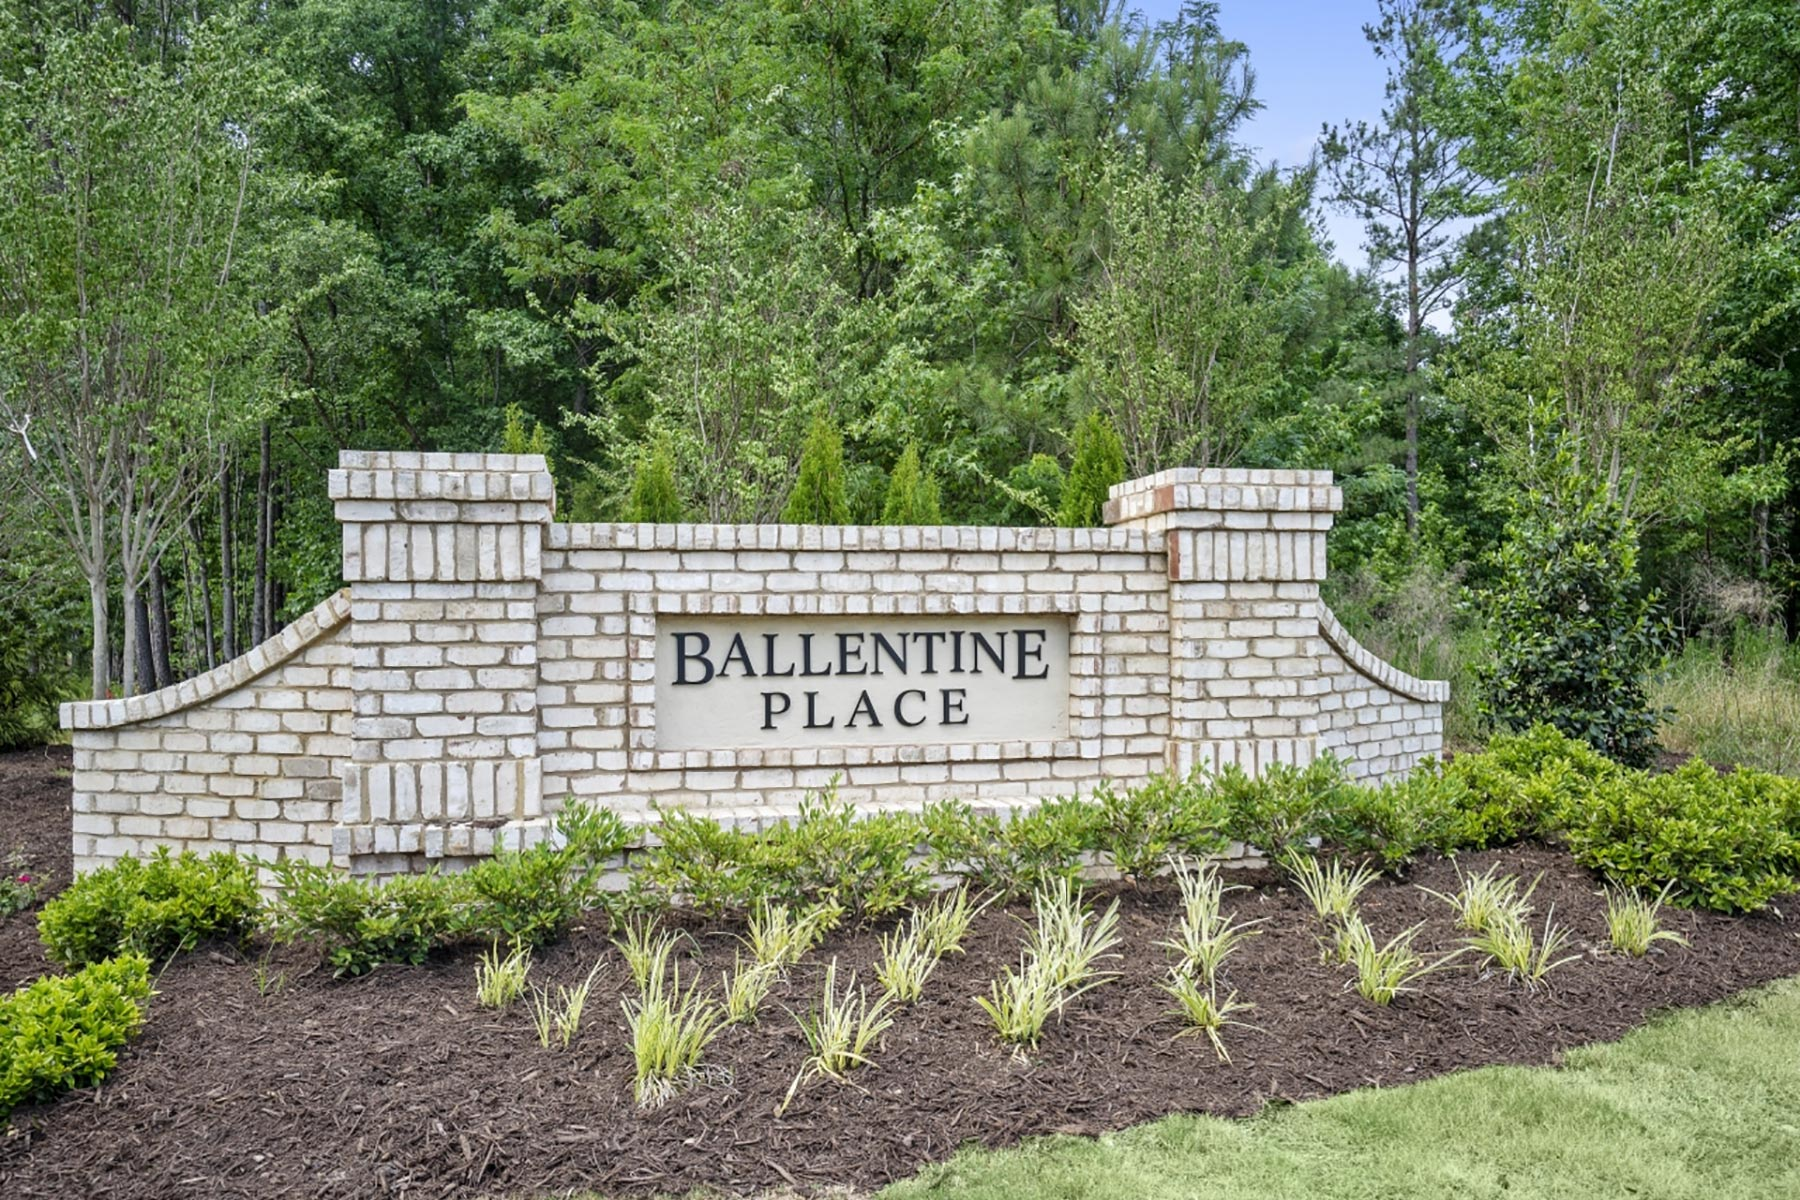 Ballentine Place Monument in Holly Springs North Carolina by Mattamy Homes